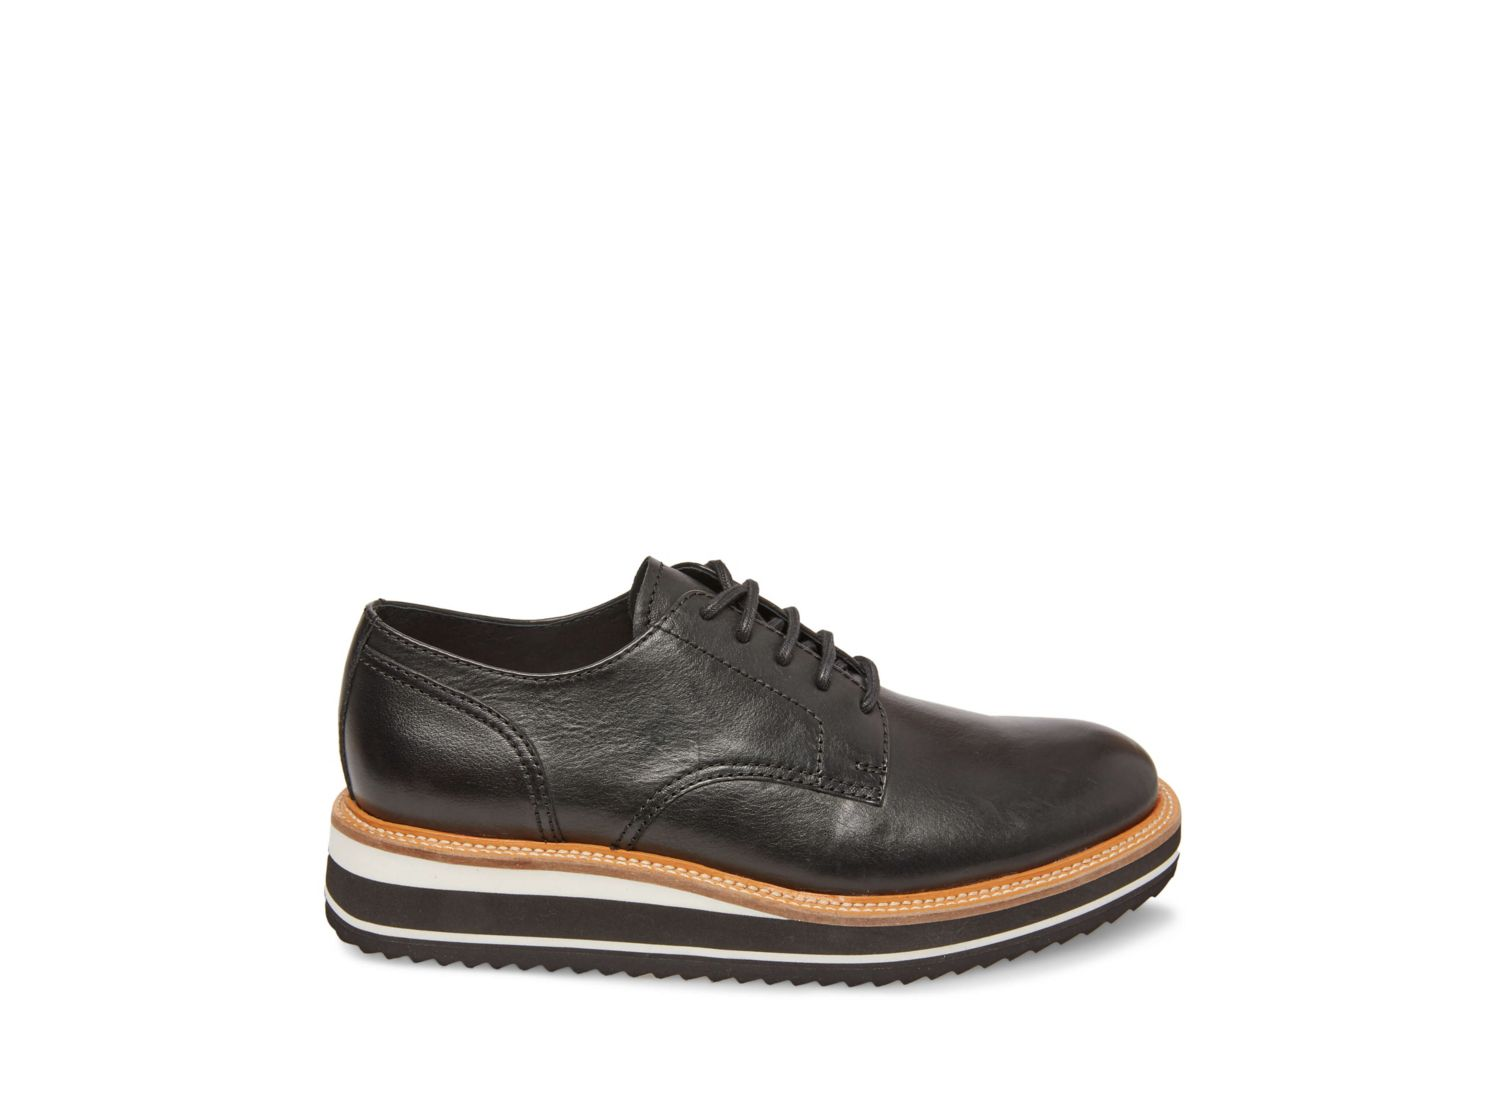 SUFRAGET BLACK LEATHER - Steve Madden